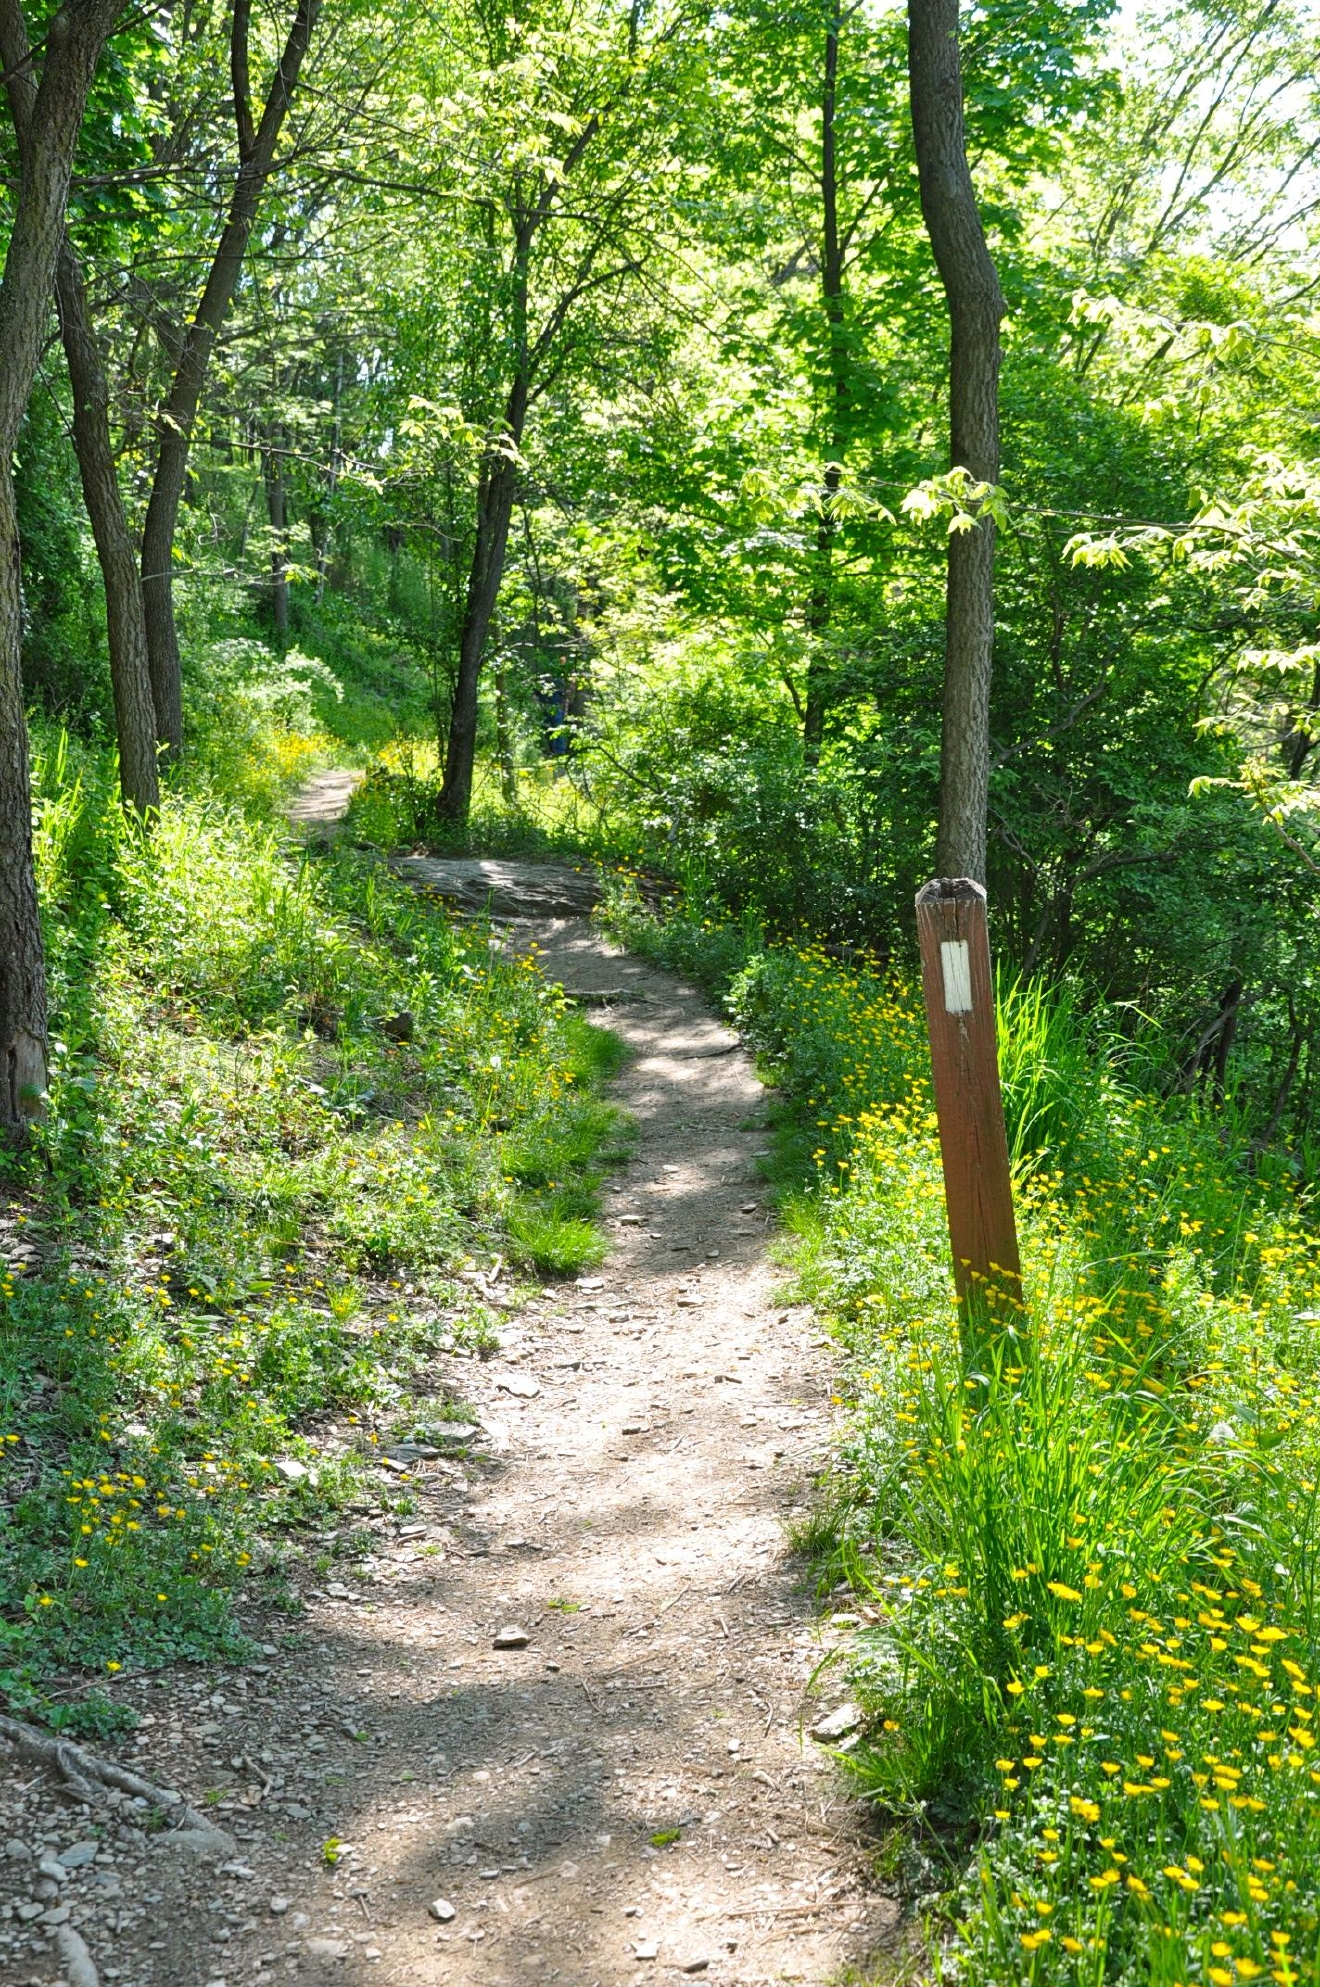 The National Park Service and Appalachian Trail Conservancy on Wednesday  lifted fire restrictions on 27.7 miles of the Appalachian National Scenic Trail in Virginia.  (Photo credit: Appalachian Trail Conservancy)